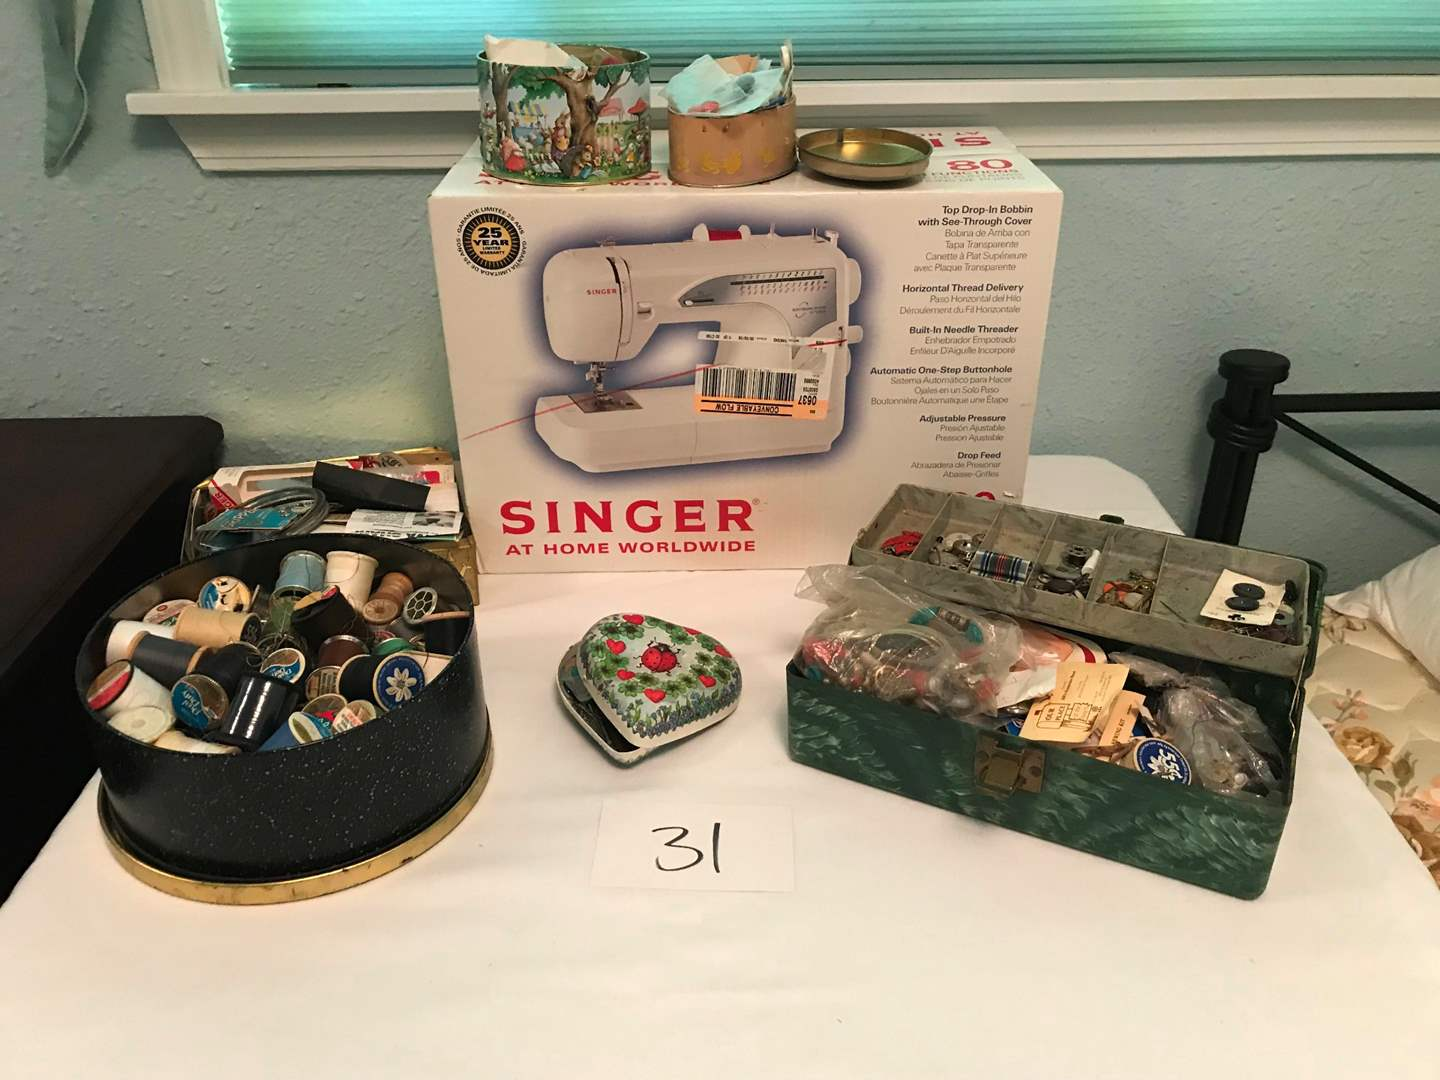 Lot # 31 - Brand new in box, Singer Sewing Machine Model #2662. Tins filled of sewing supplies/buttons (main image)